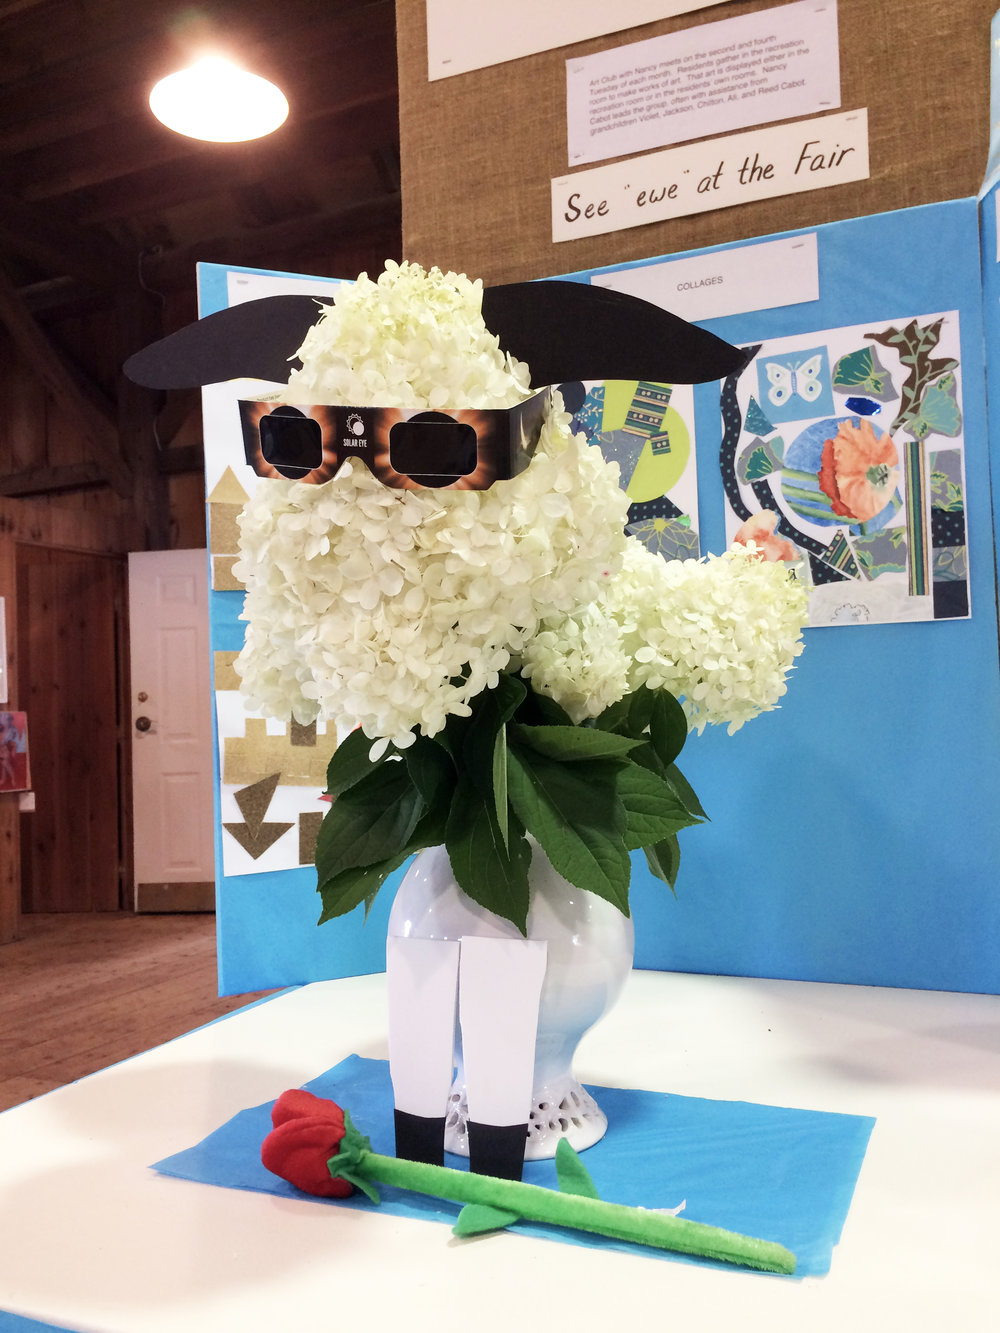 """This was the 156th Annual Agriculture Fair on the island. This year's theme was """"See Ewe at the Fair""""...and it happened during Eclipse week. Here is one of the displays that someone entered."""